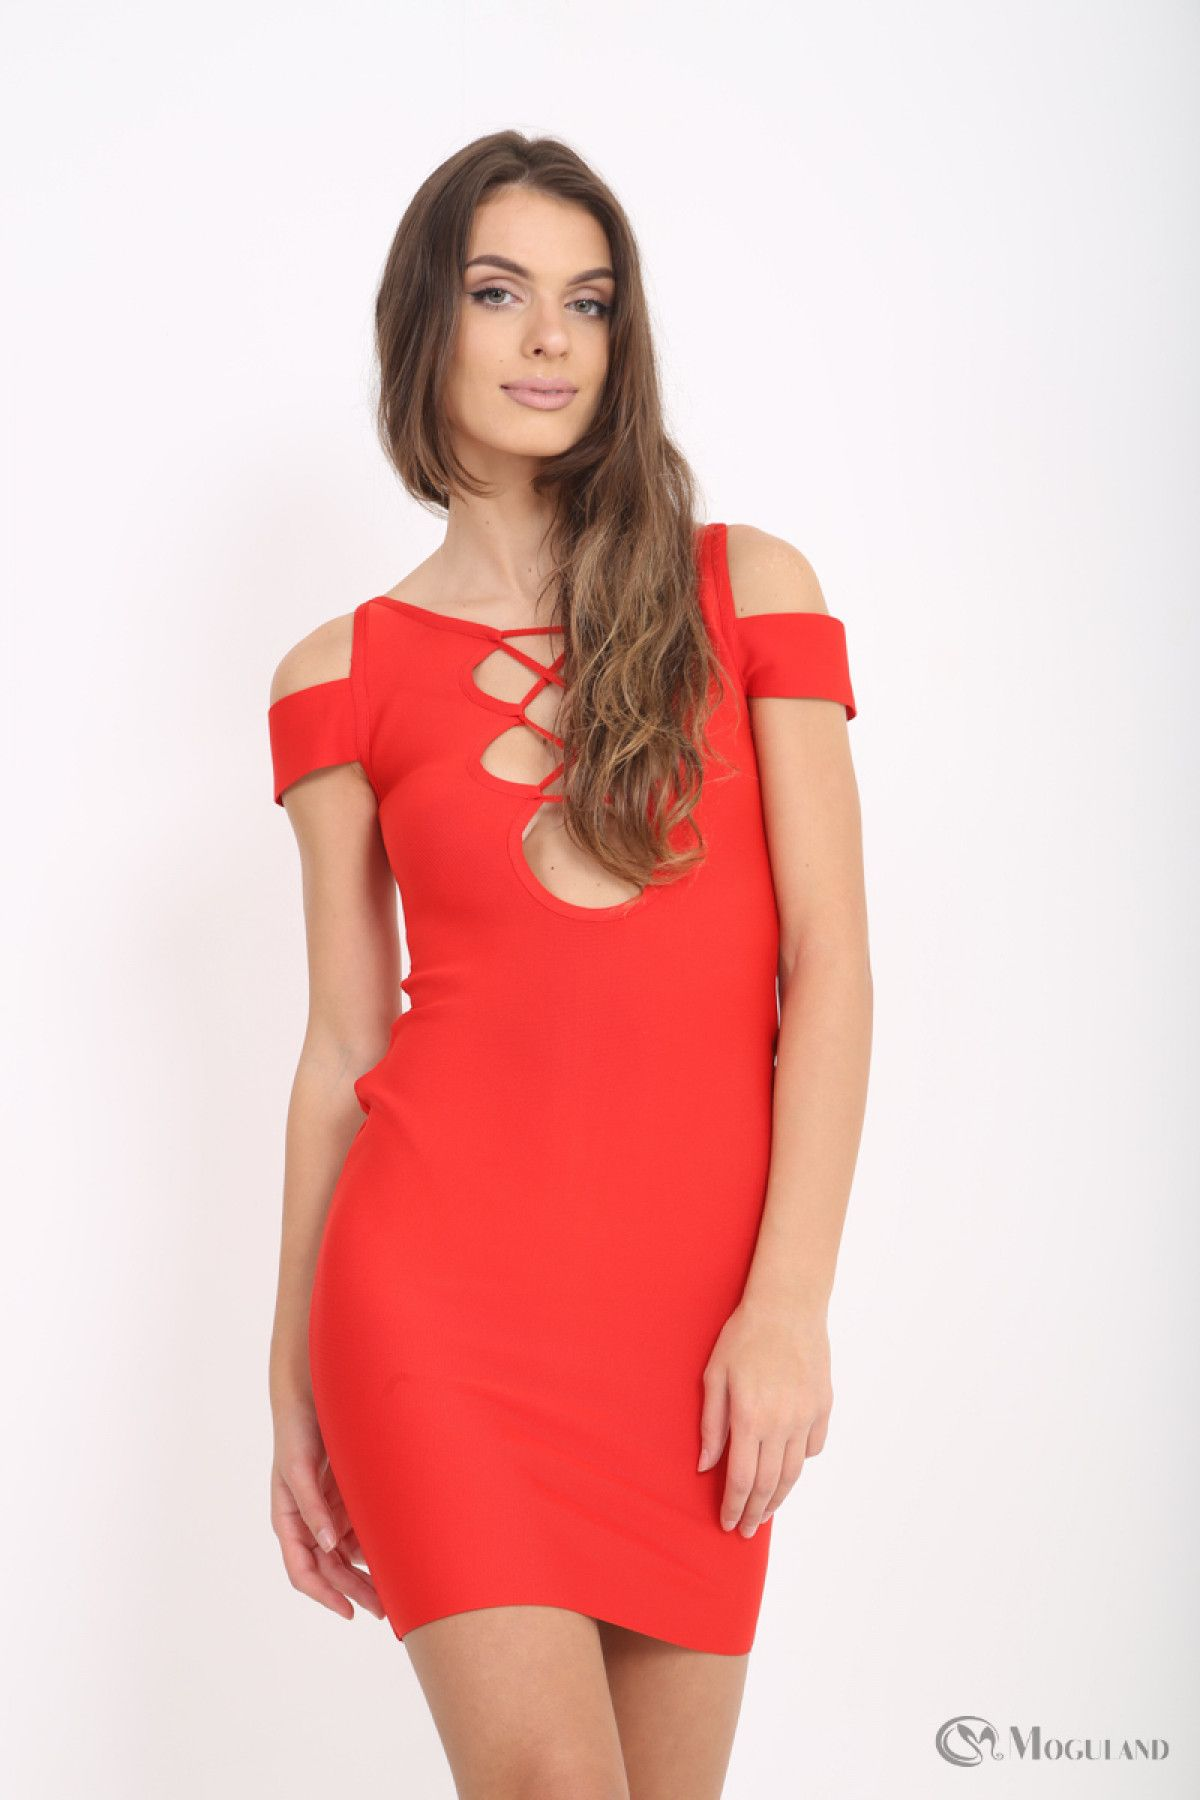 63abbb1f6f Ladies red cold shoulder plunge bandage dress wholesale - Women s Wholesale  Clothing Supplier